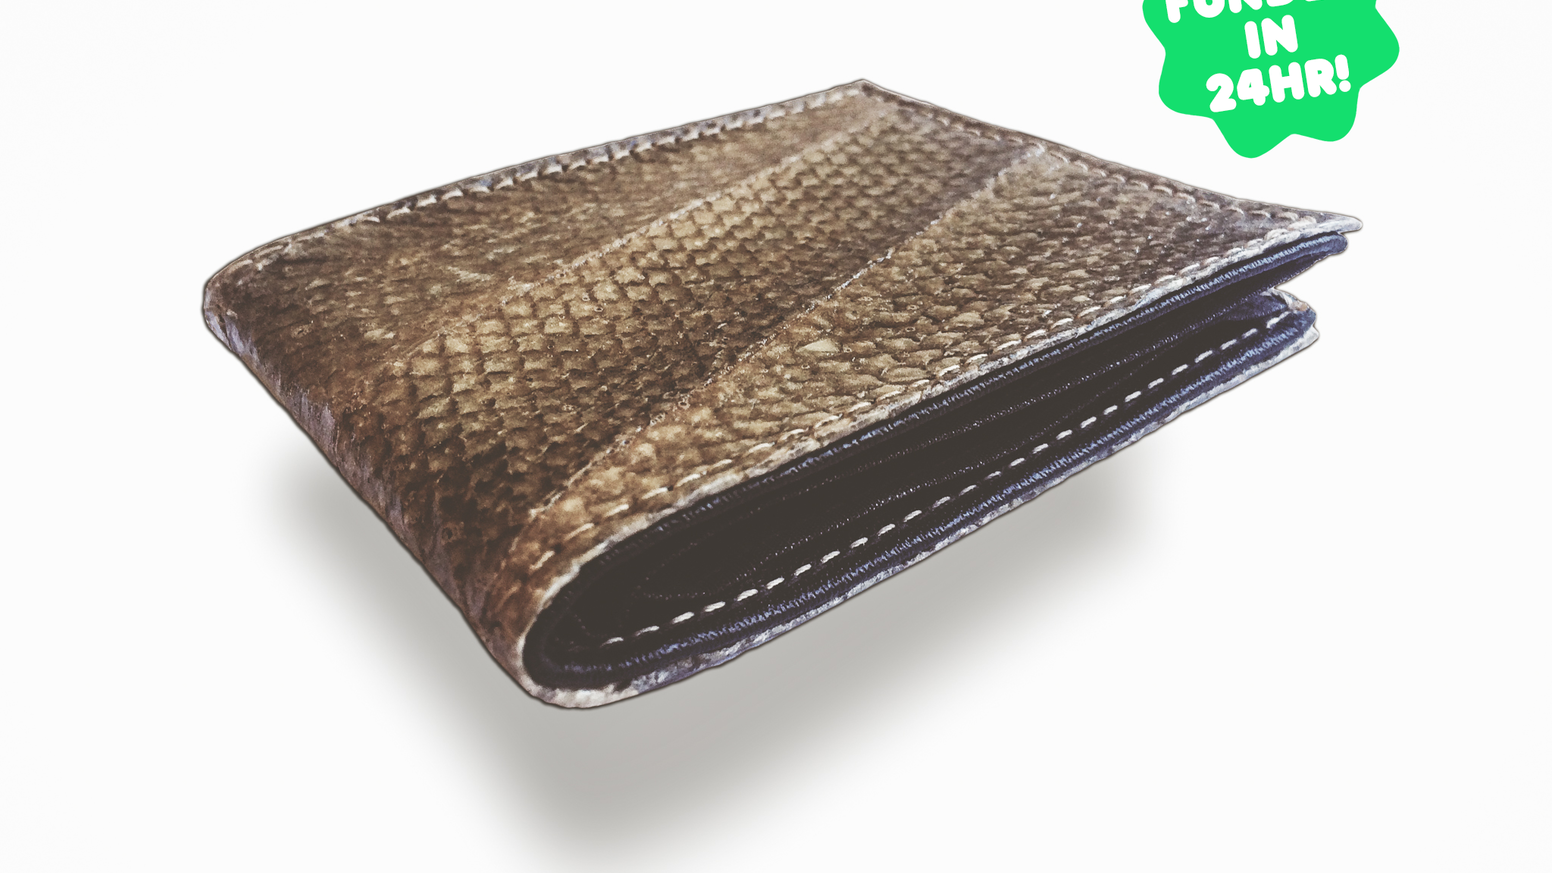 One of a kind Alaska Salmon Leather Wallets! Upcycled from a sustainable fishery, 100% made in the USA.